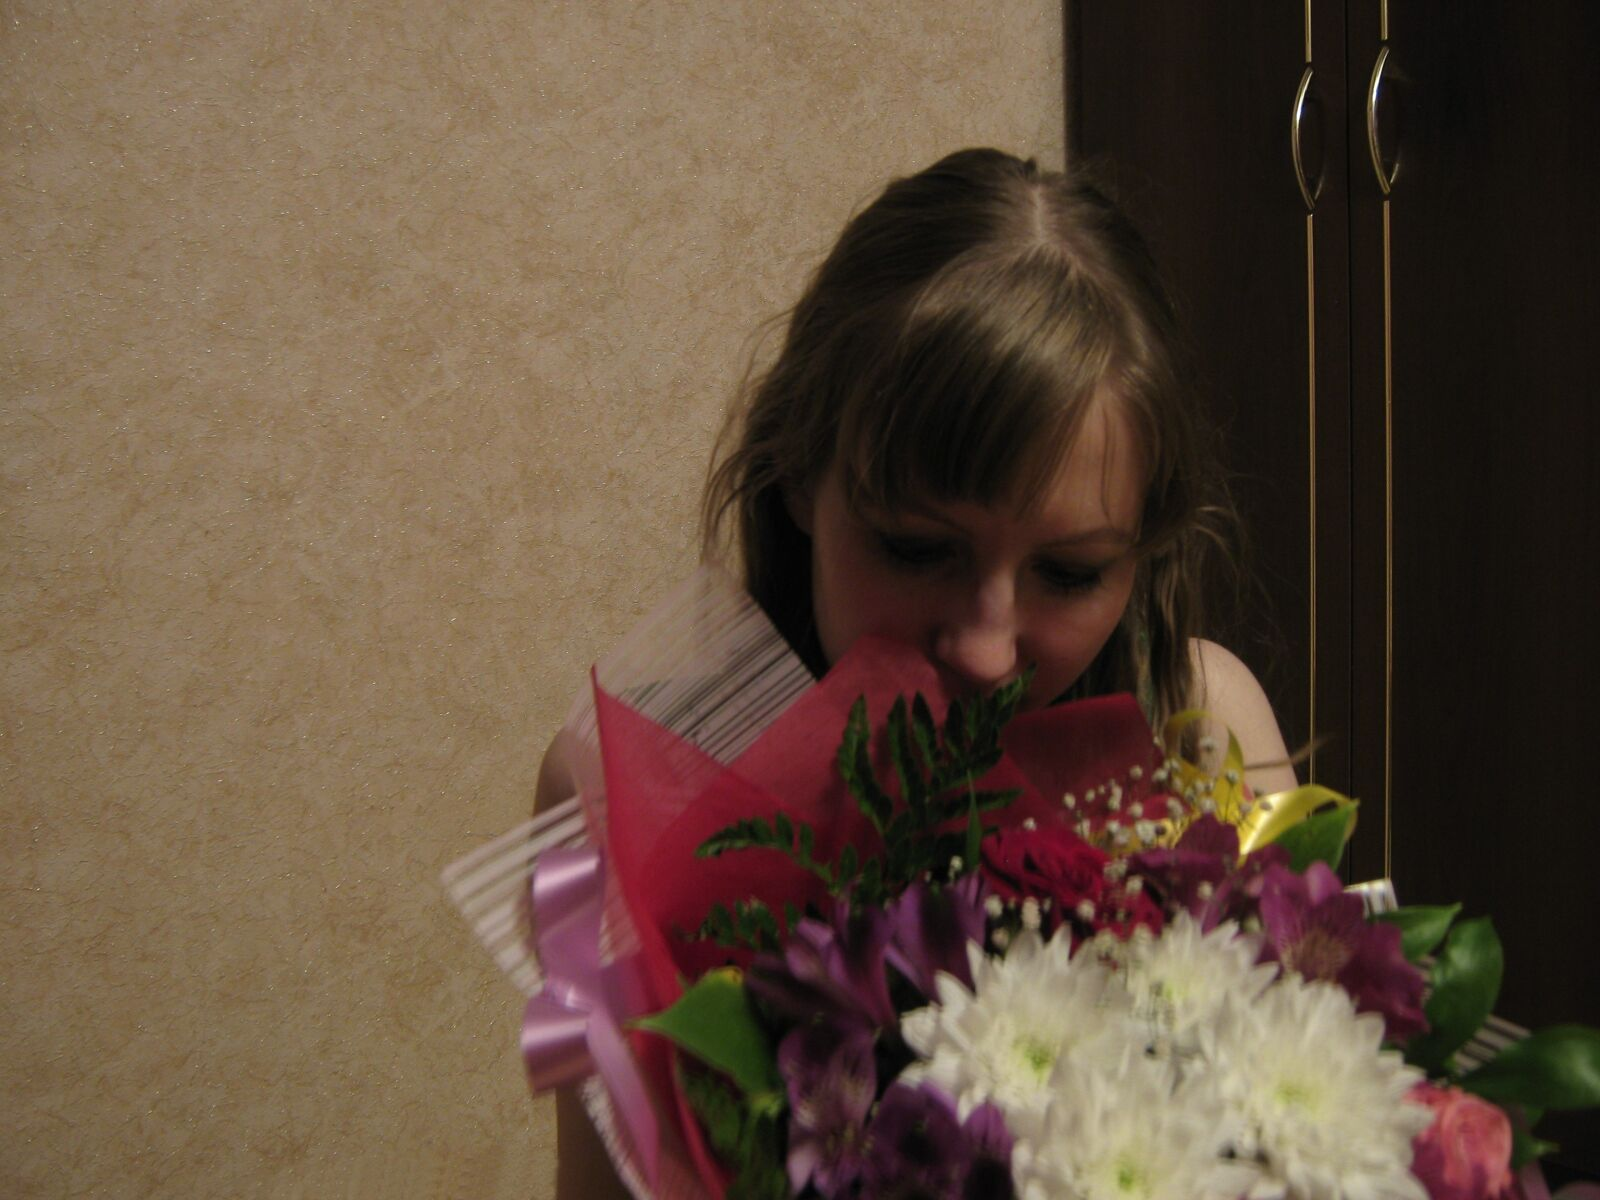 """Canon PowerShot A470 sample photo. """"Girl, flowers, bouquet"""" photography"""